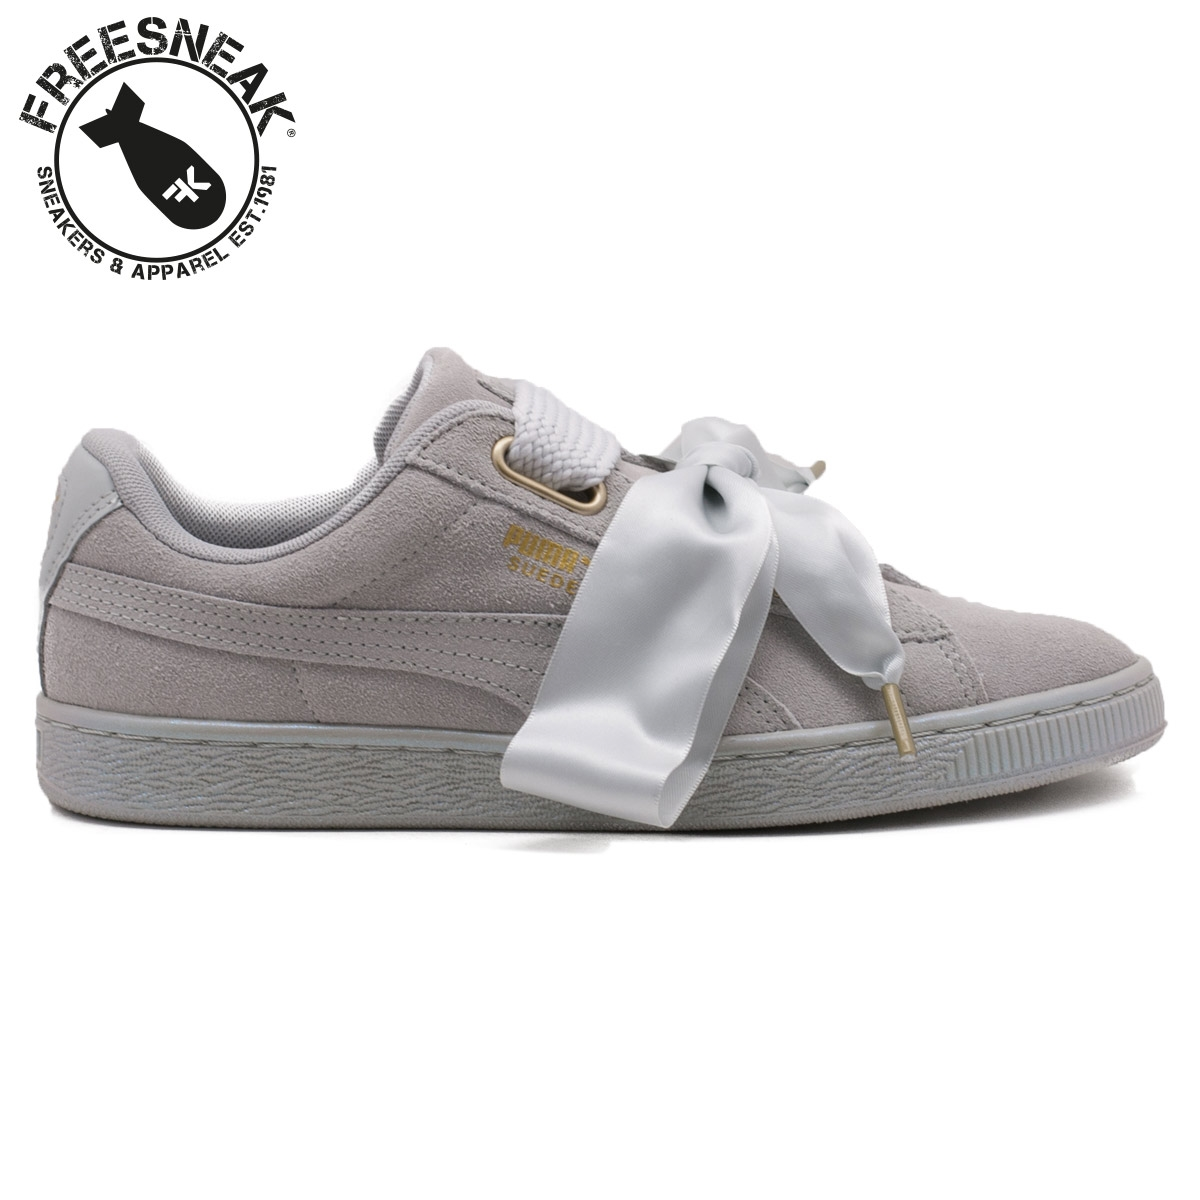 new styles 0592a a4c18 SUEDE HEART SATIN GREY 362714-02